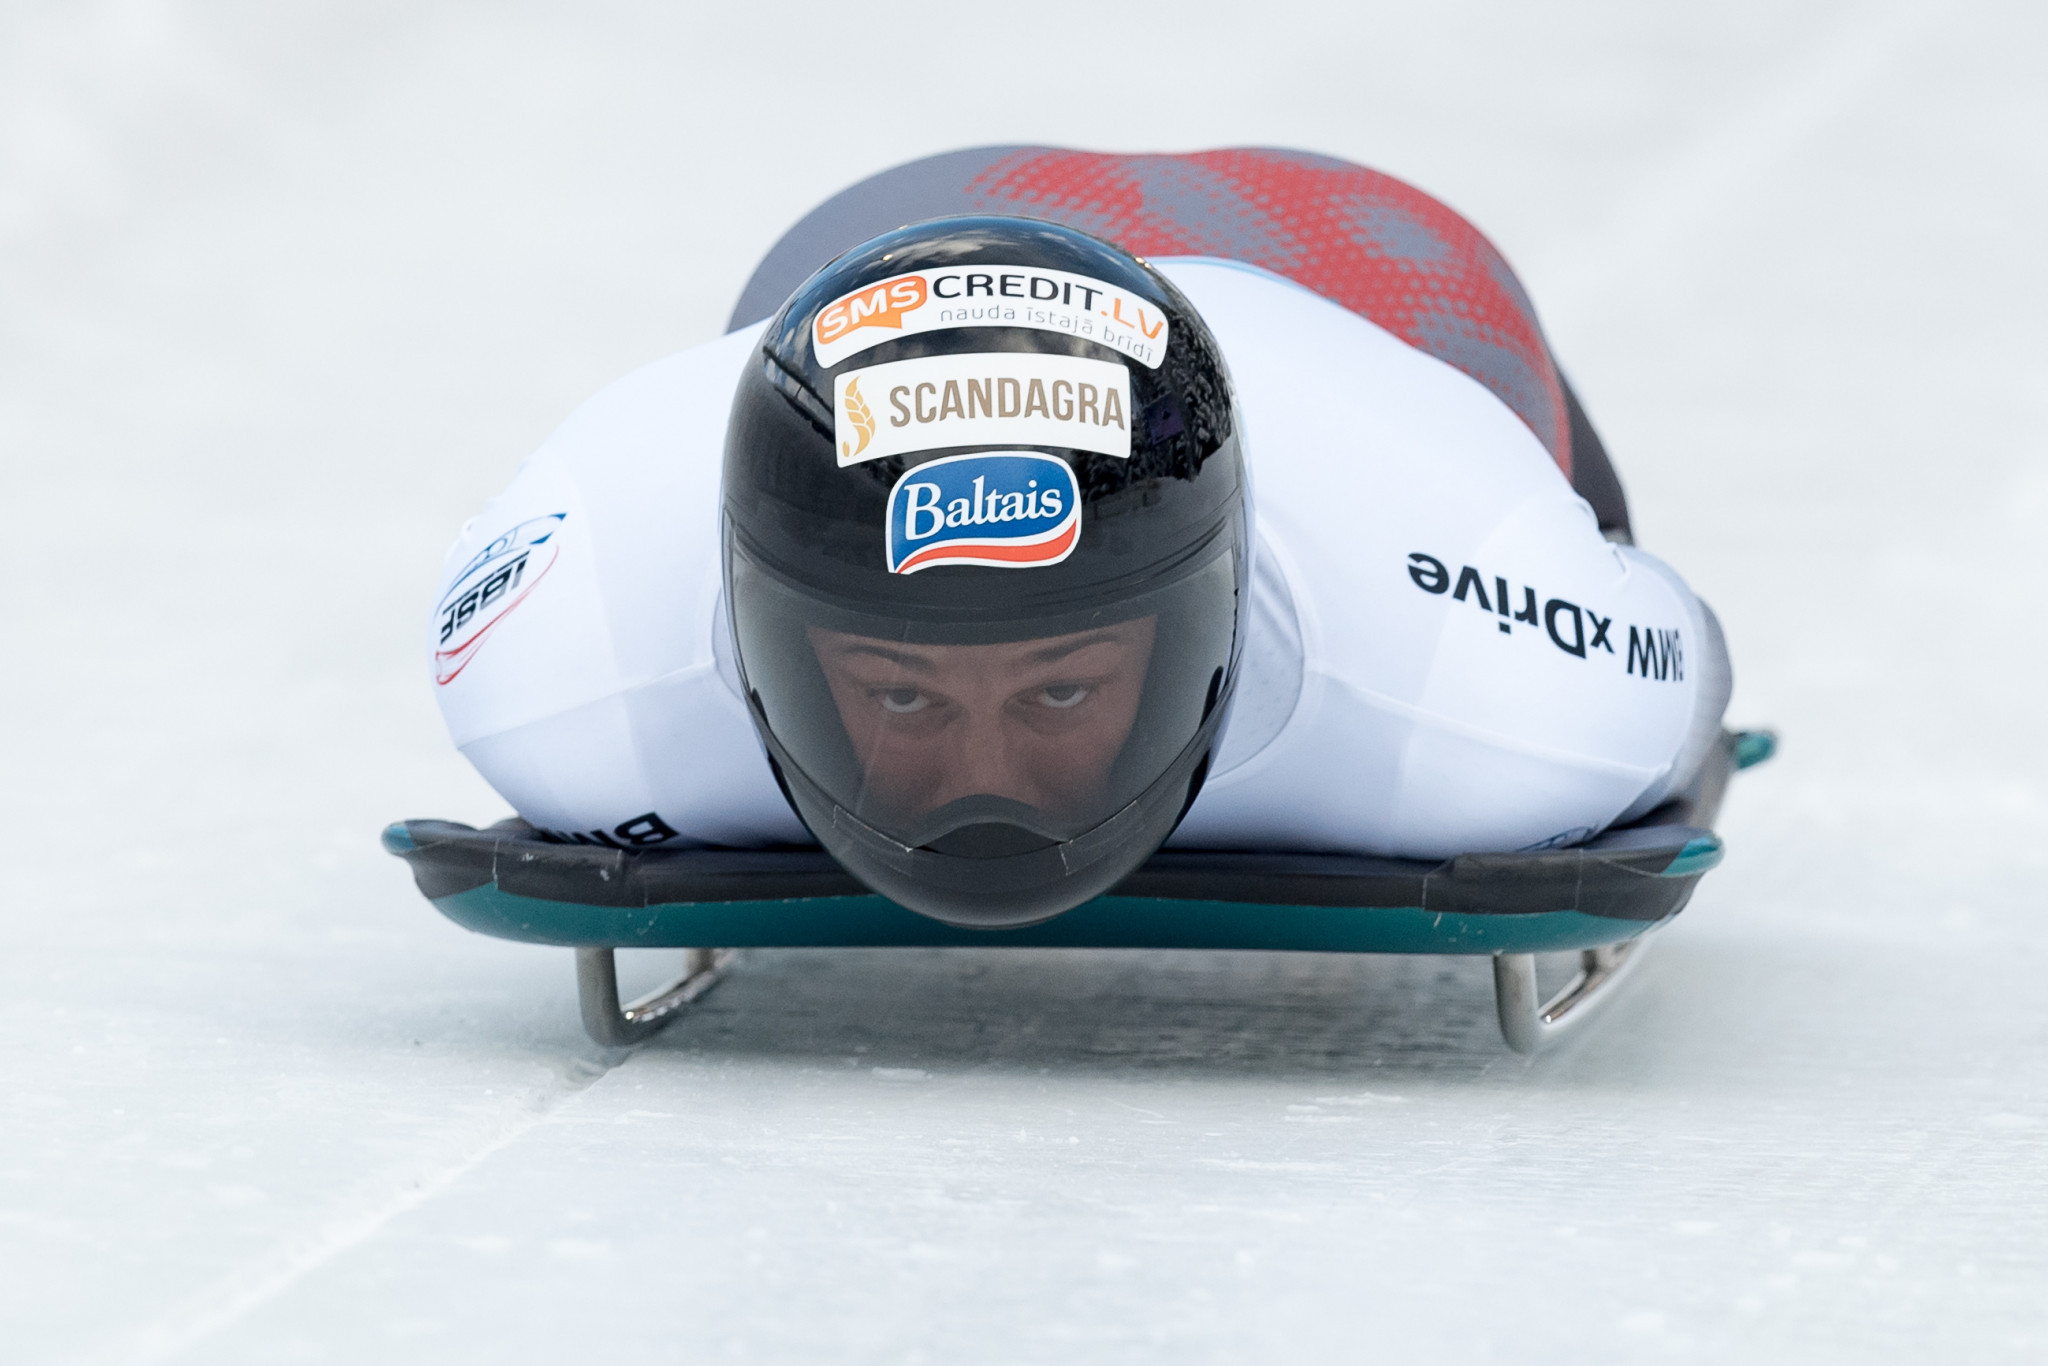 Dukurs favourite to win another Skeleton World Cup overall title after Yun withdraws